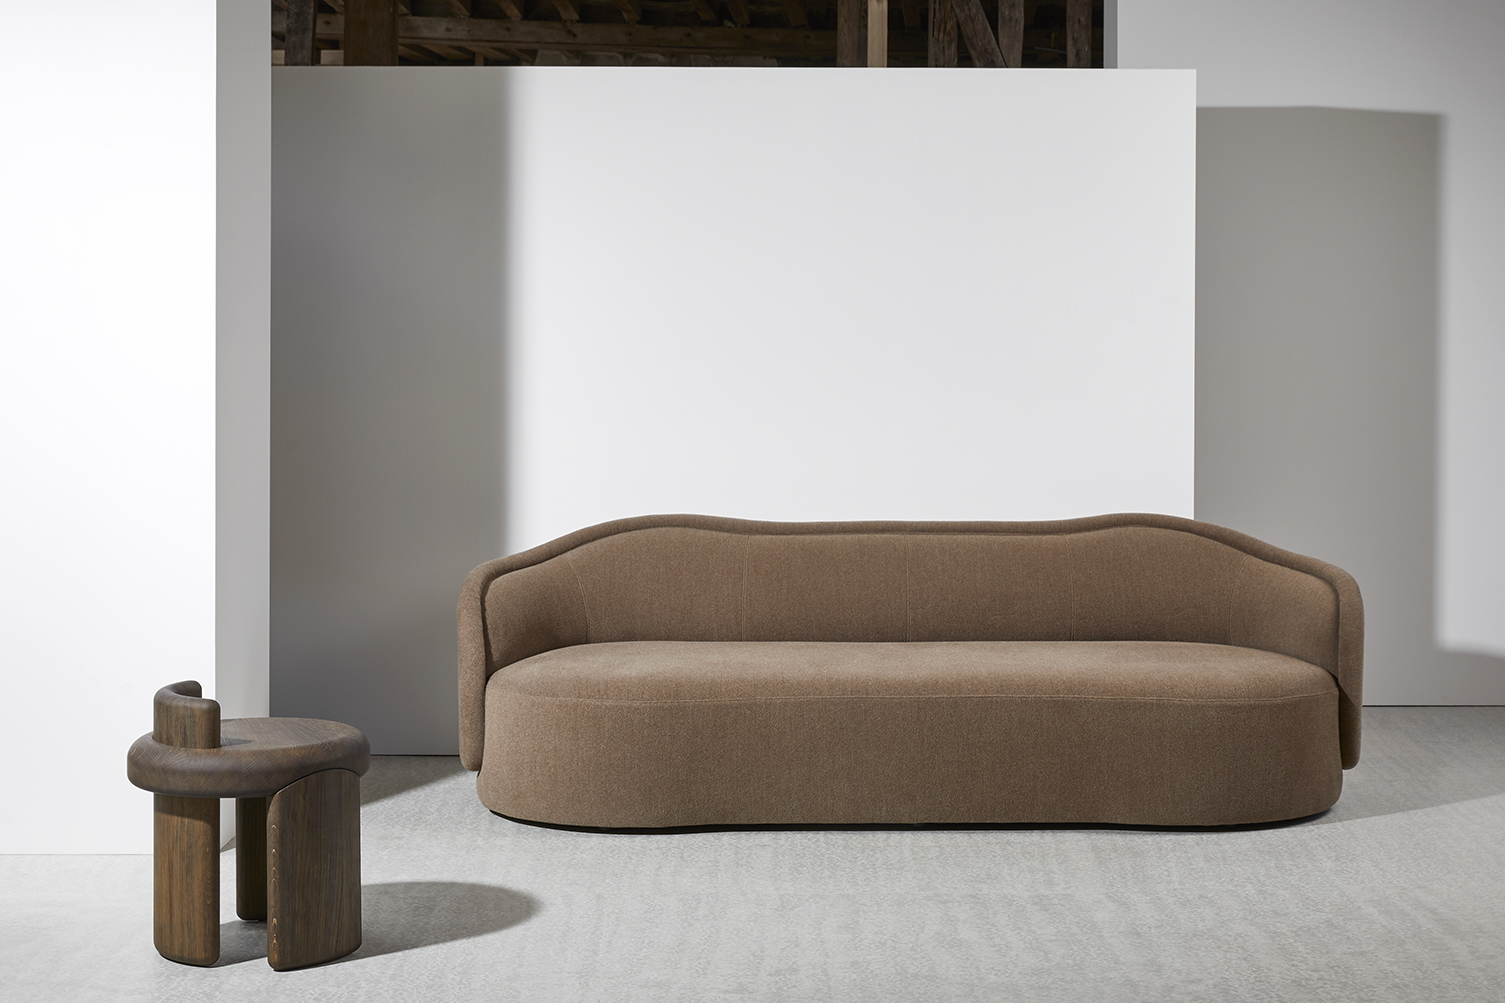 PIA-sofa-christophe-delcourt-Collection-Particuliere2